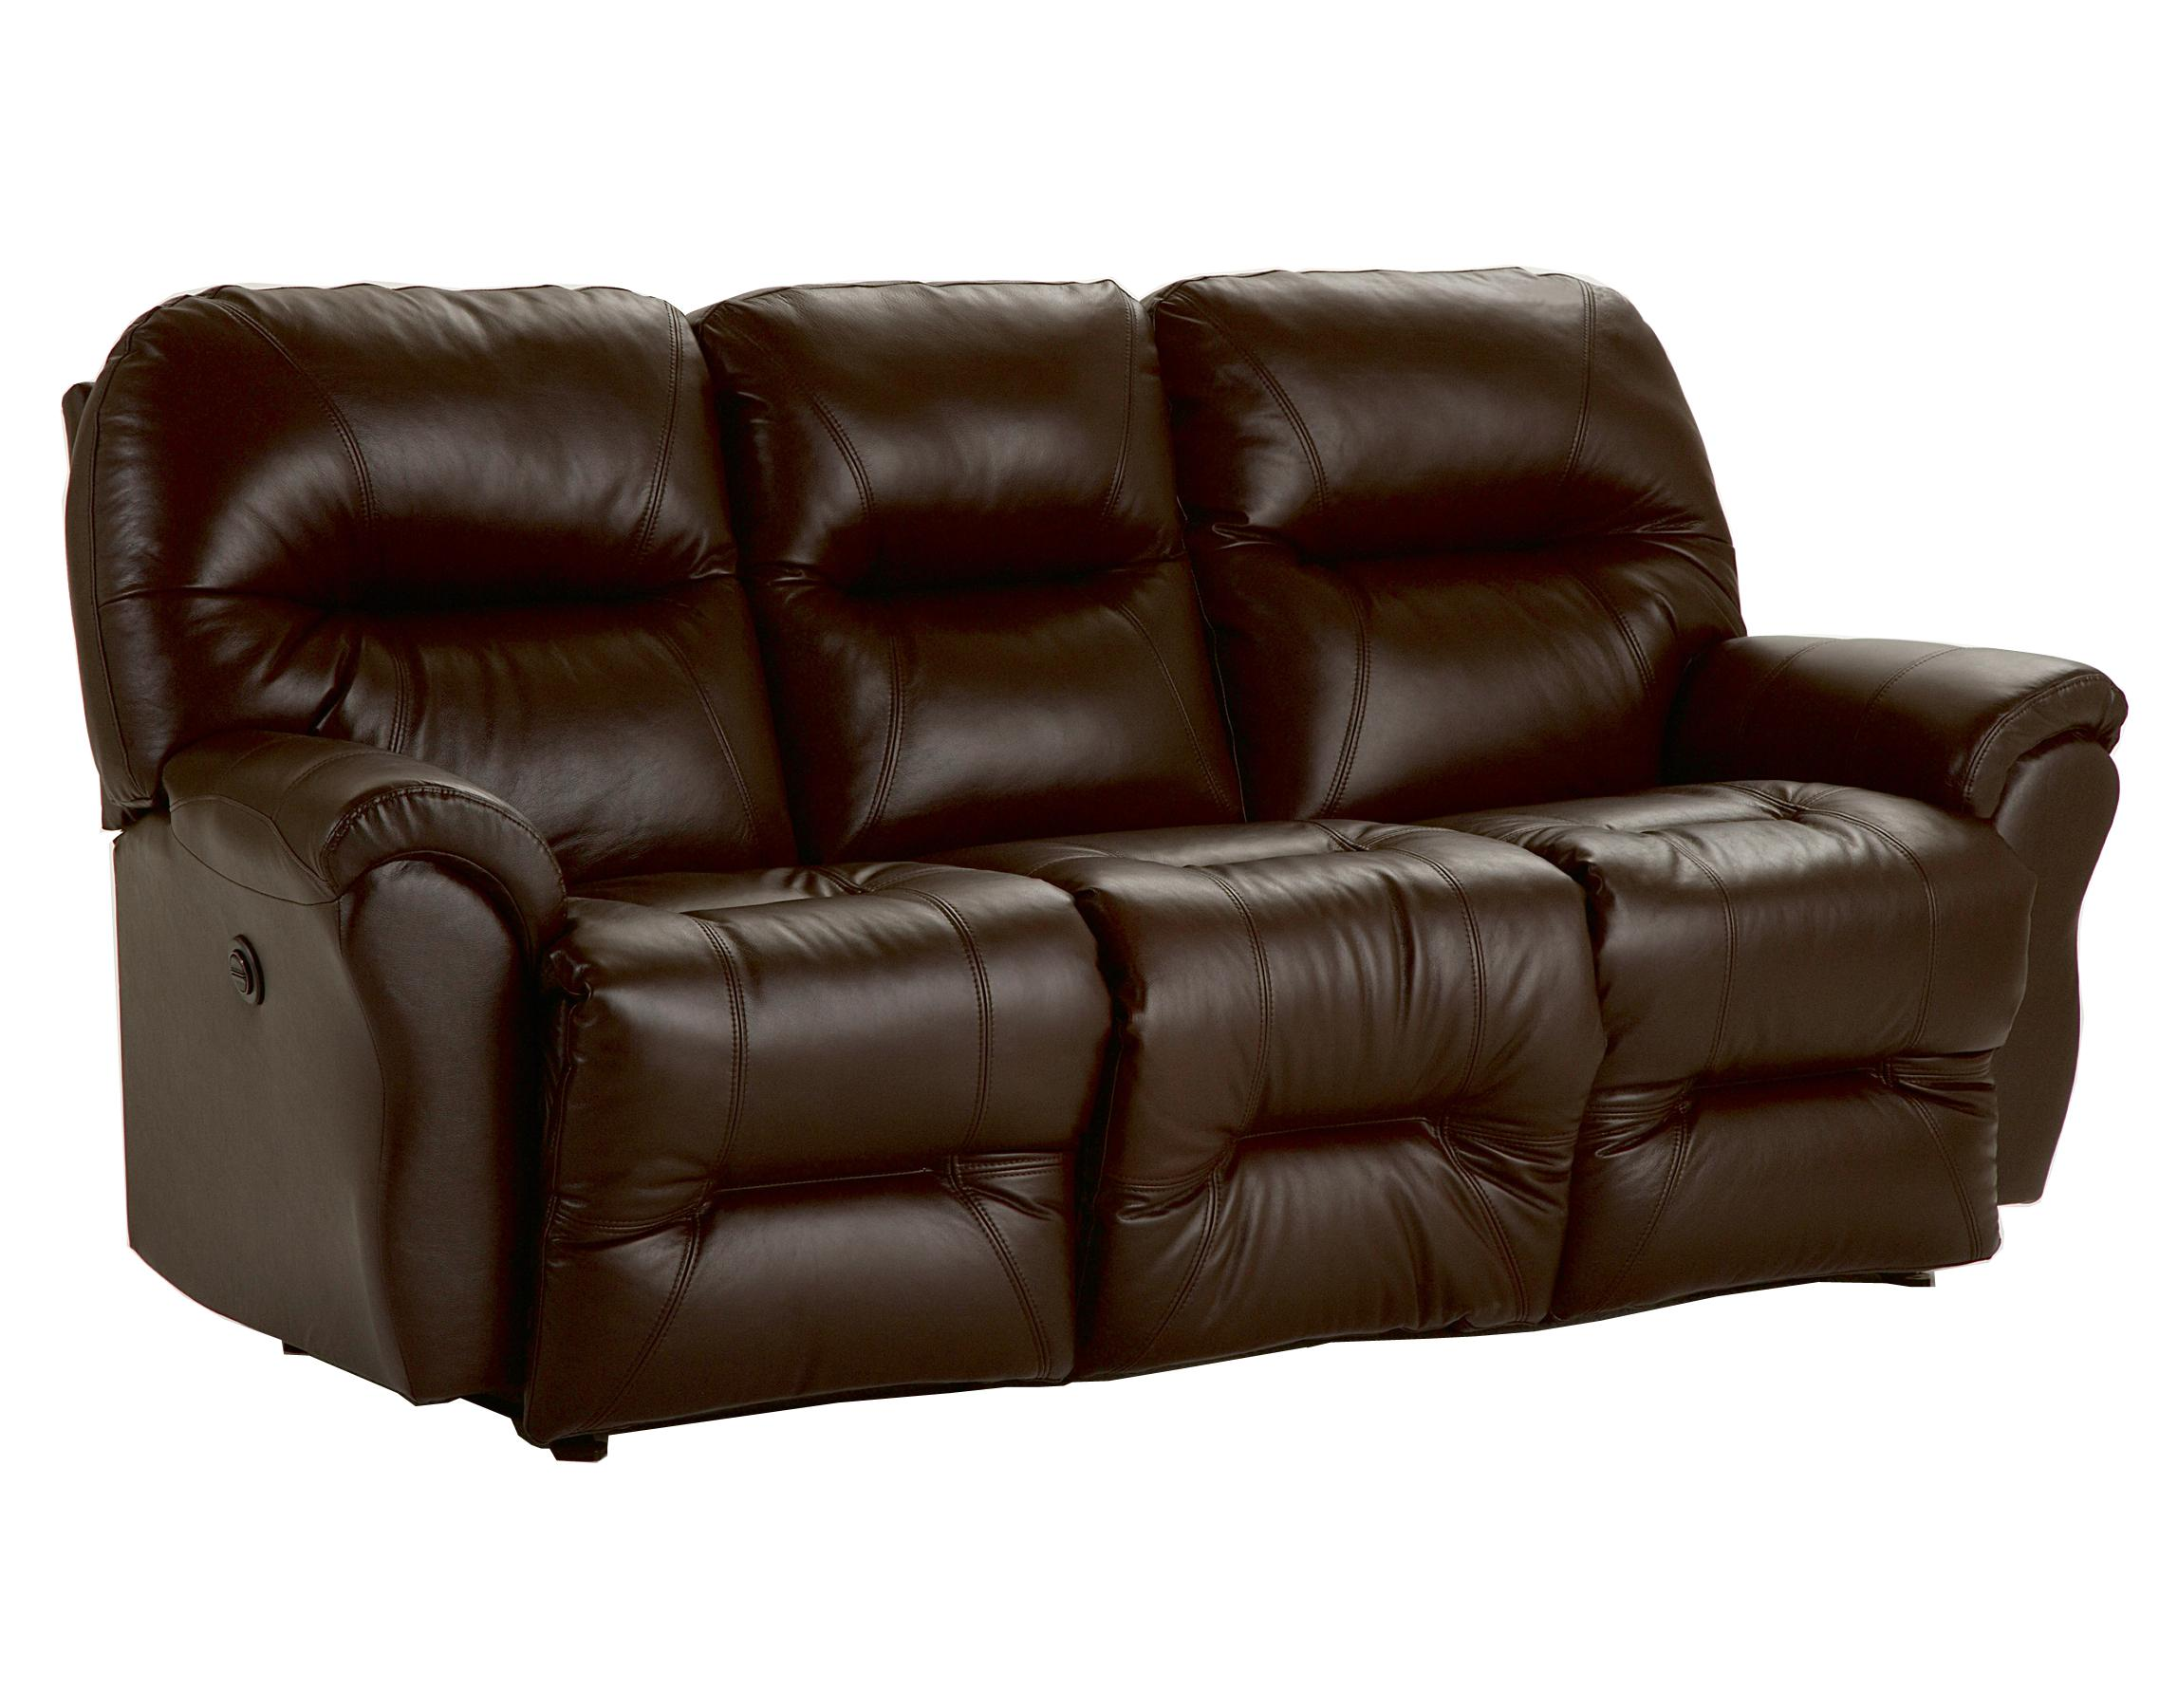 Power reclining sofa chaise by best home furnishings for Best home furnishings